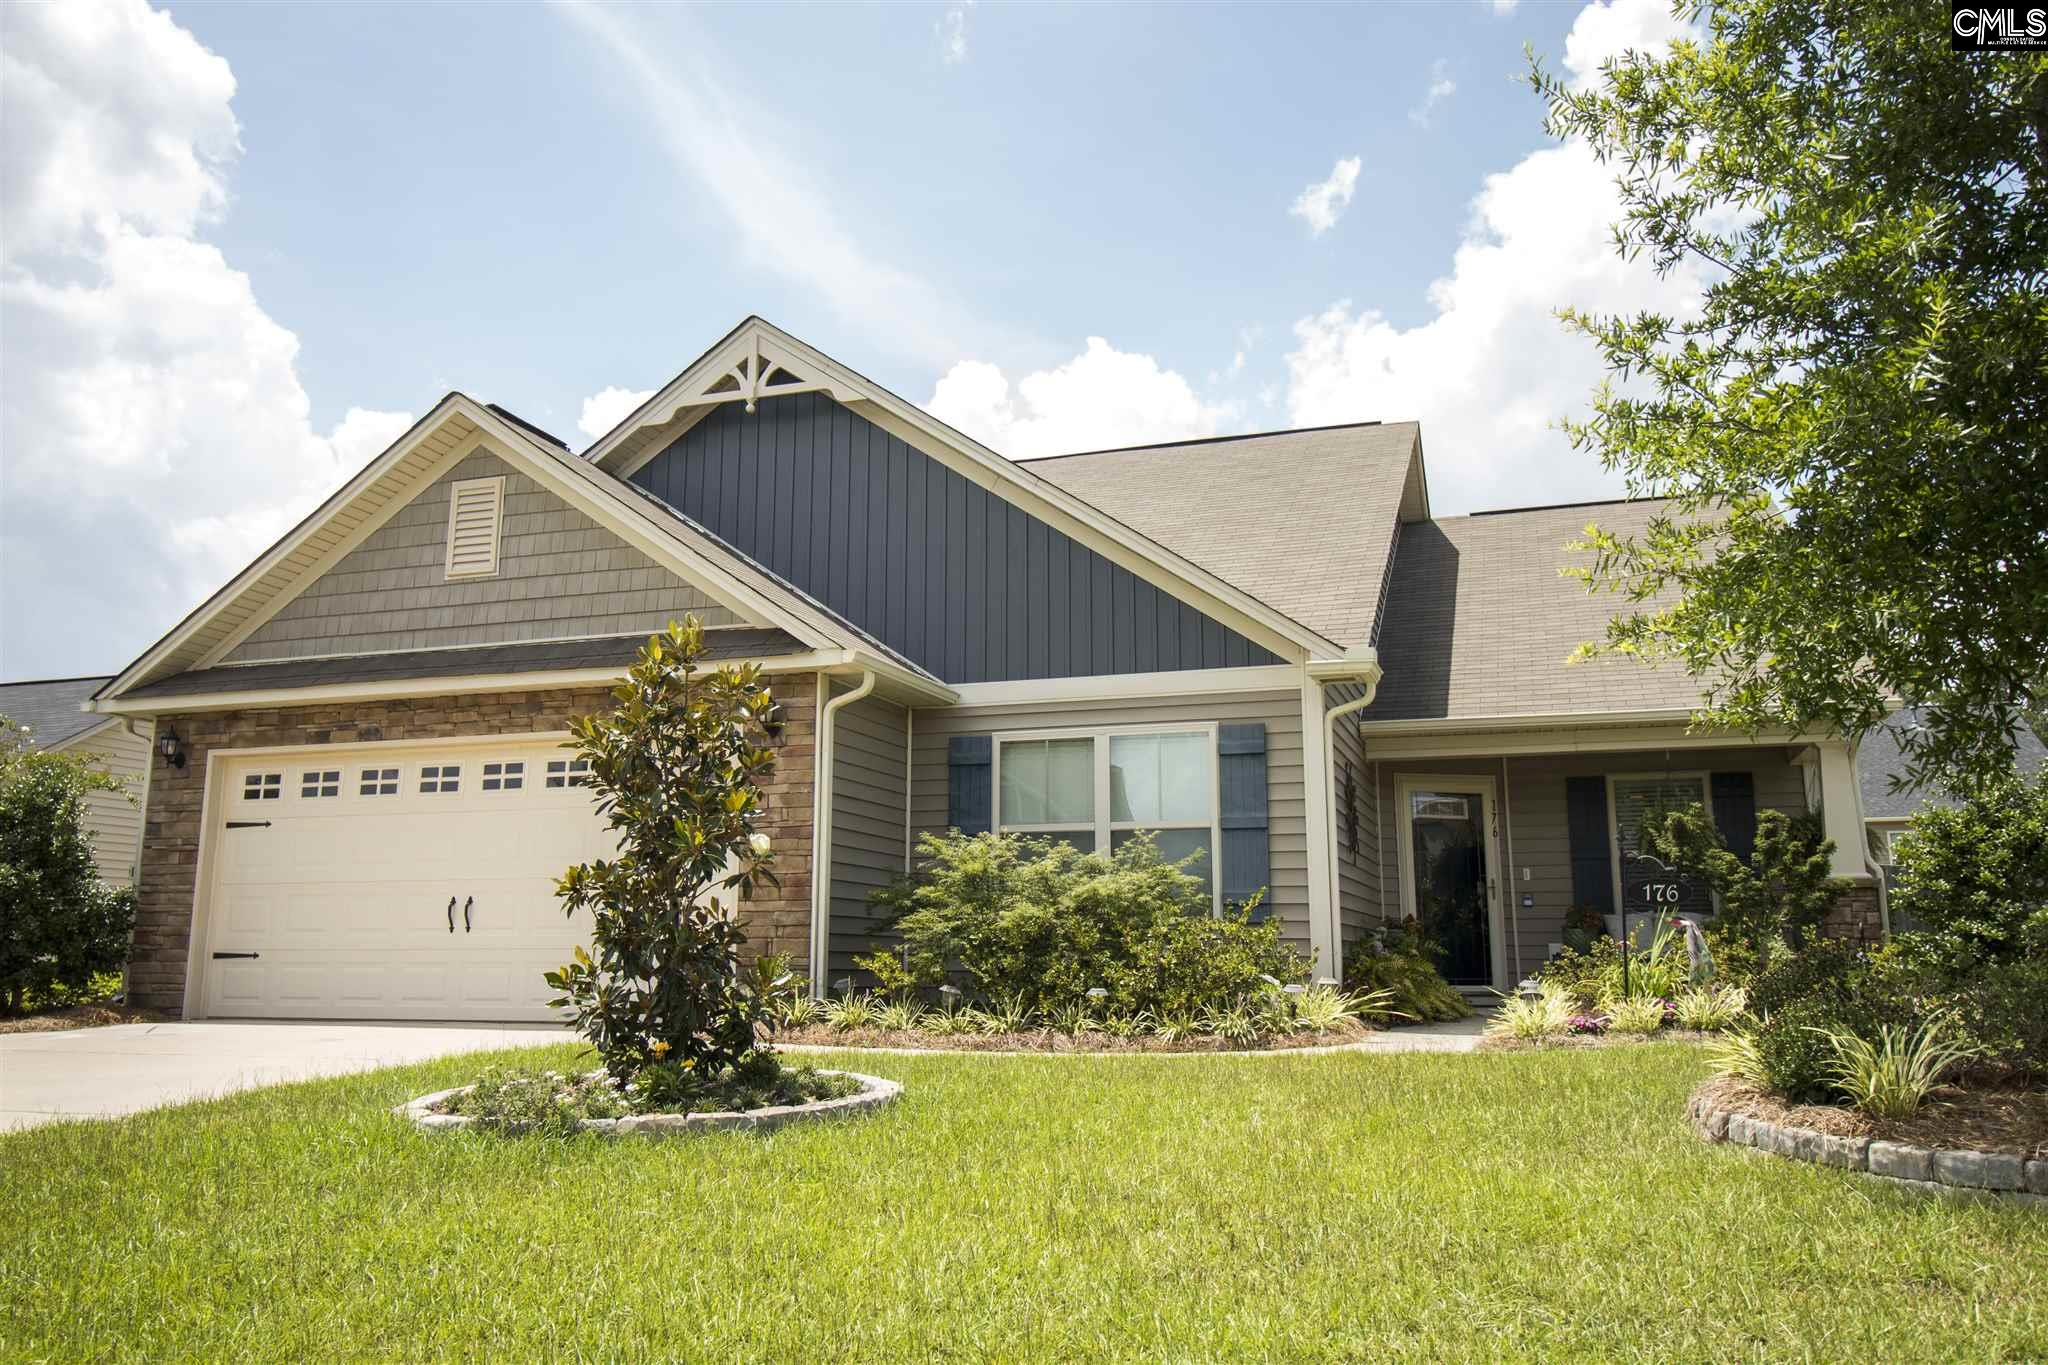 176 Rossmore Cayce, SC 29033